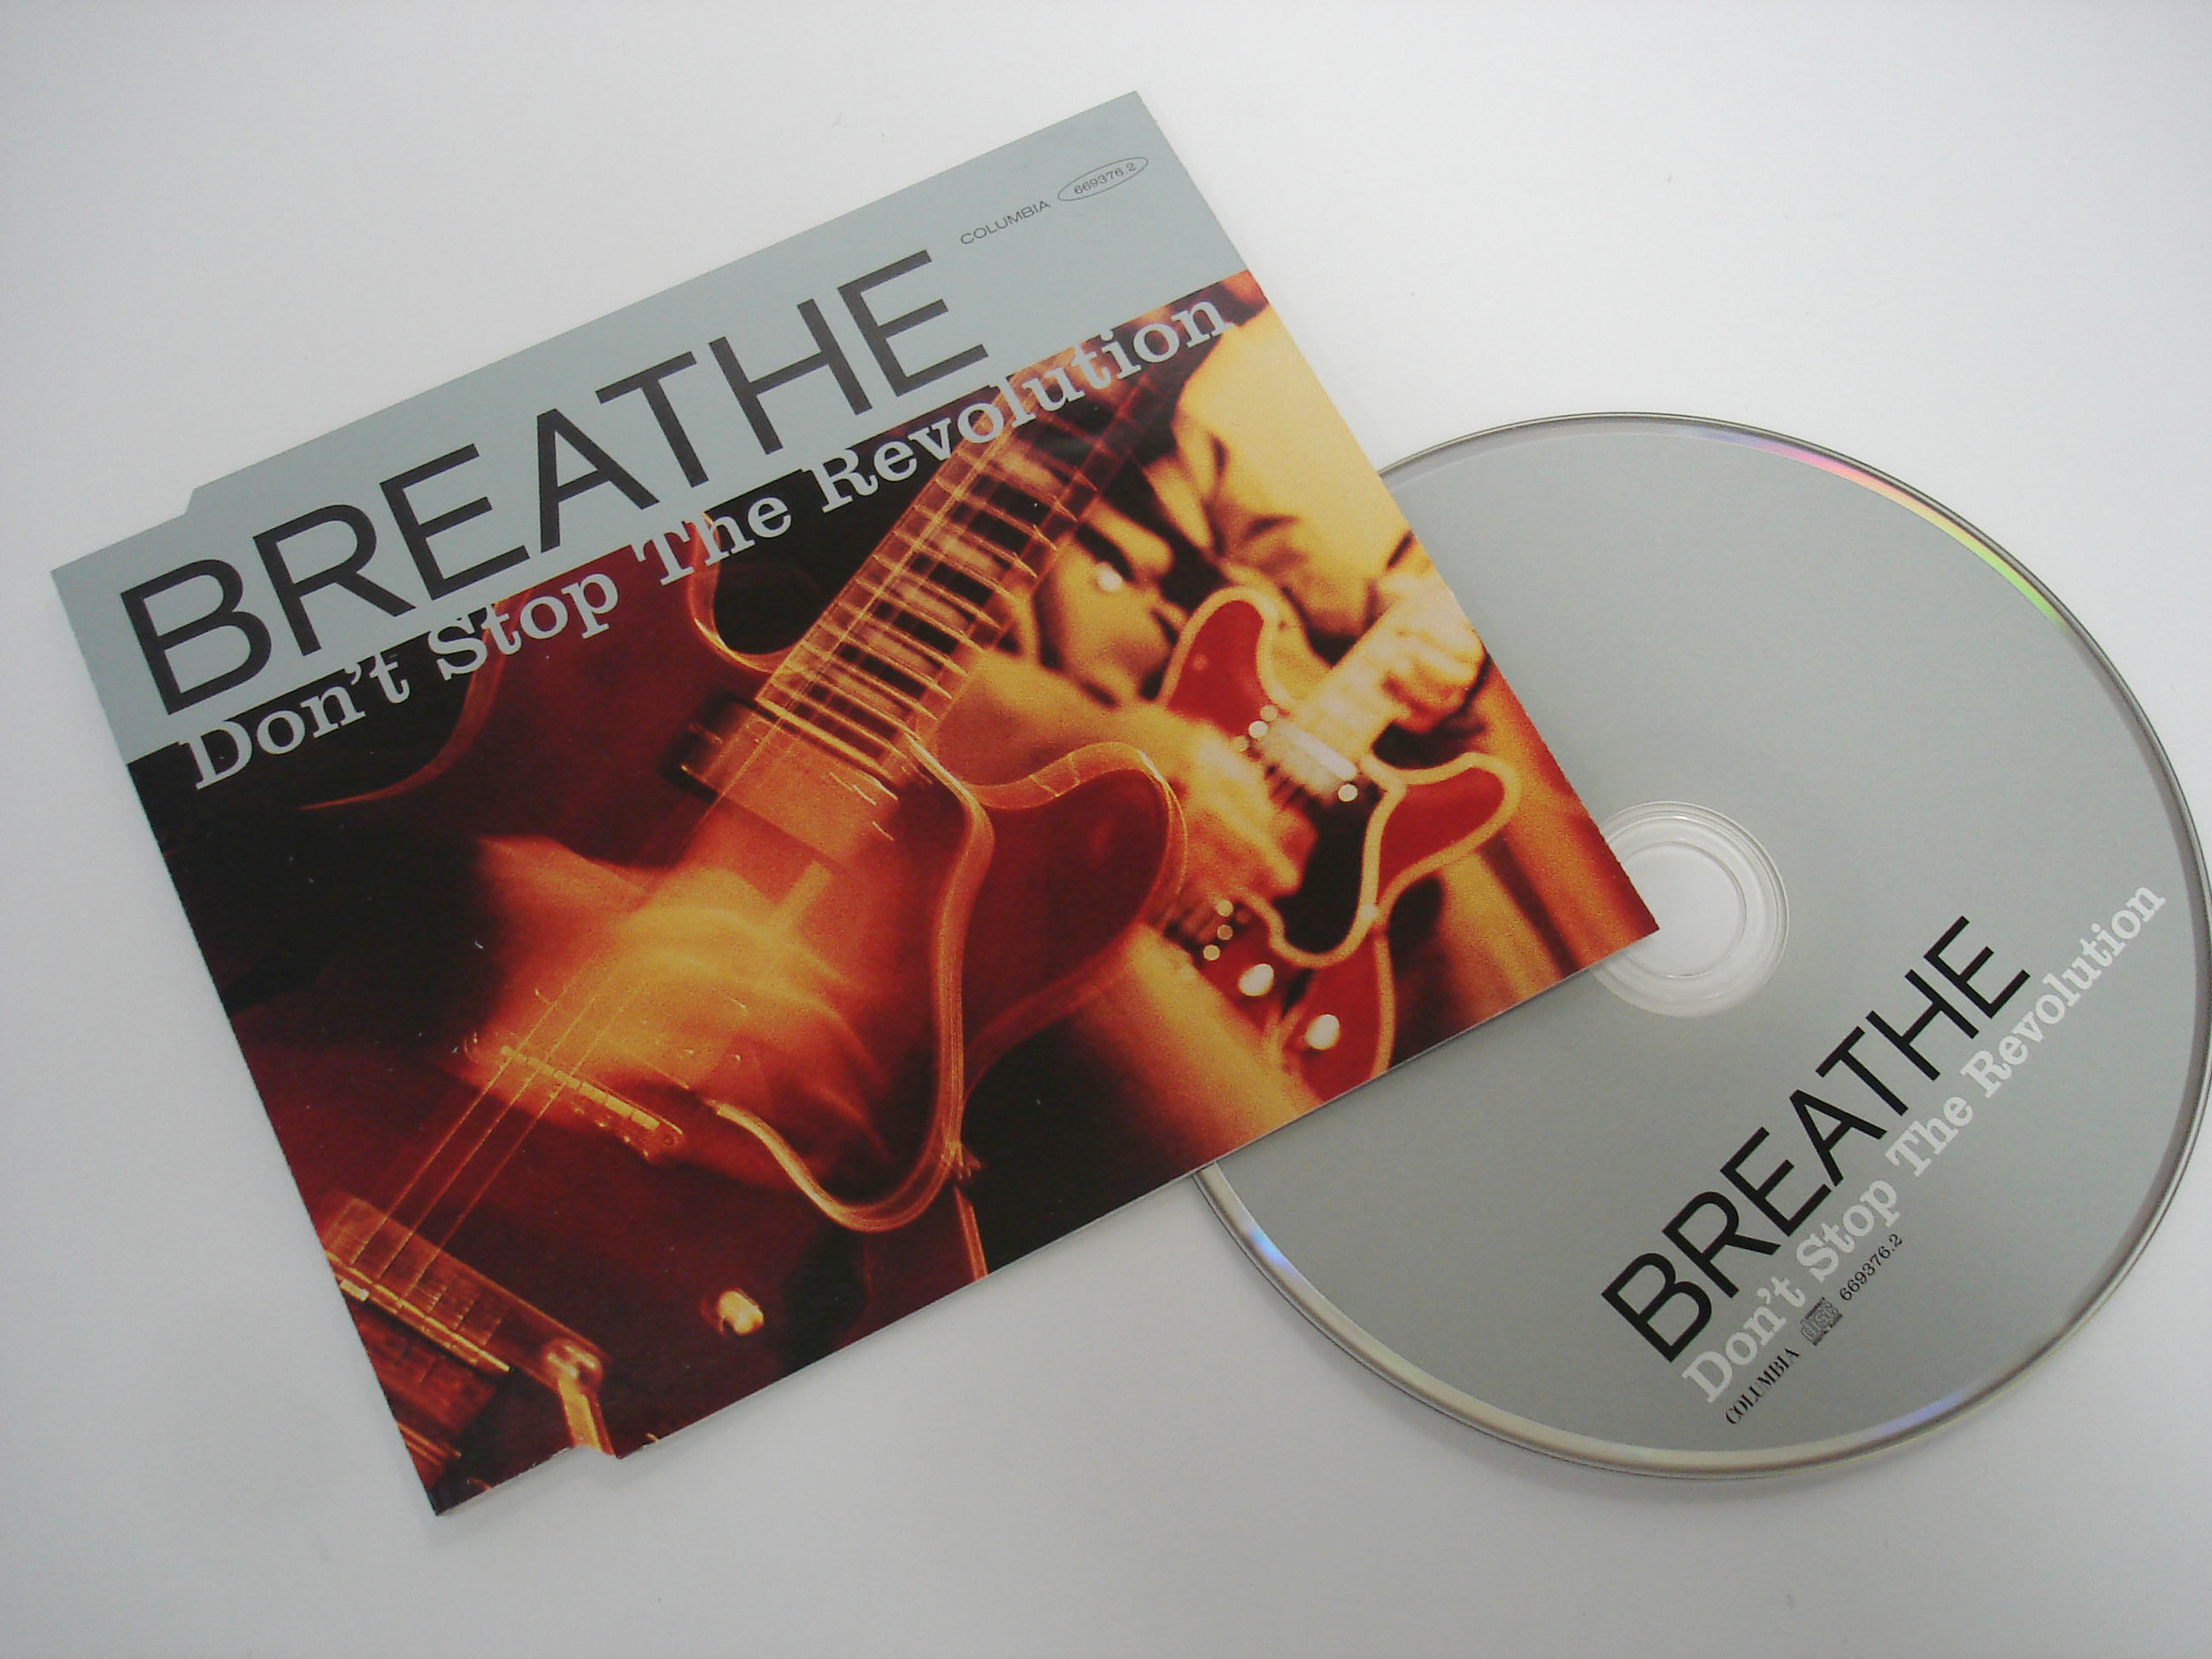 BREATHE - DON'T STOP THE REVOLUTION - SINGLE